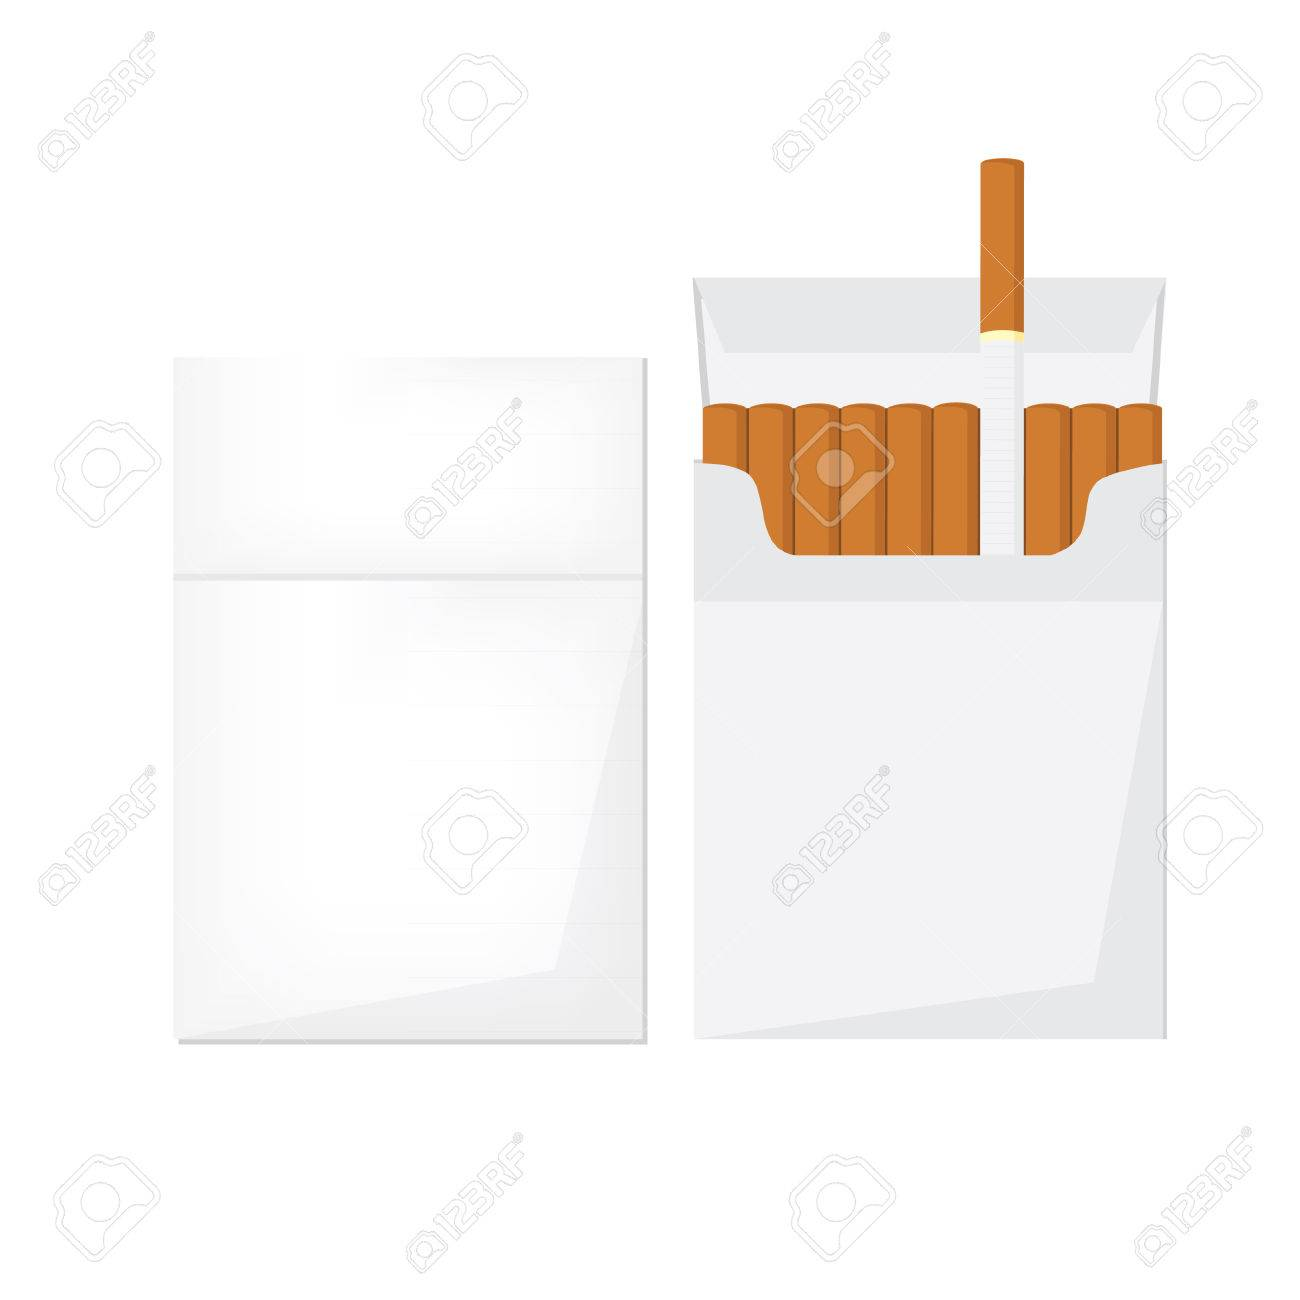 Cigarette pack clipart freeuse stock Opened And Closed Cigarette Pack With Cigarettes Vector Illust ... freeuse stock